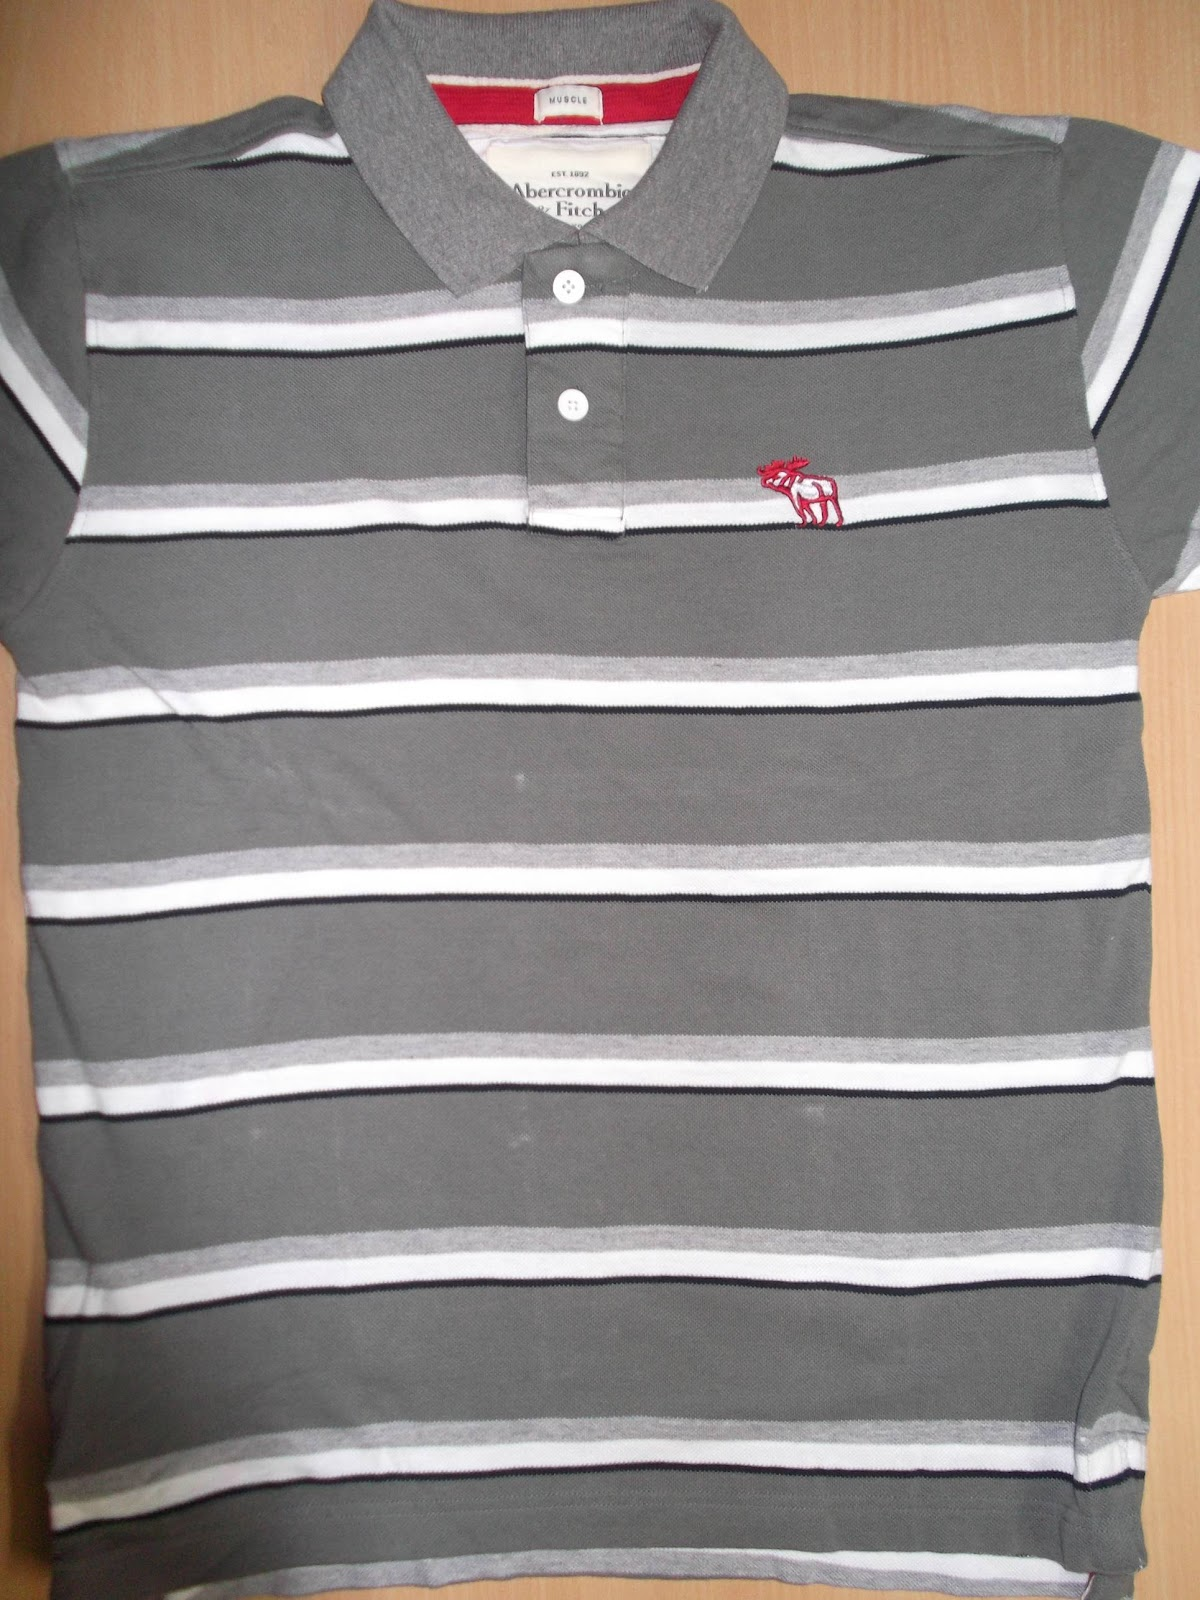 Stock Lot or Export Surplus T Shirts for wholesale in Tirurpur